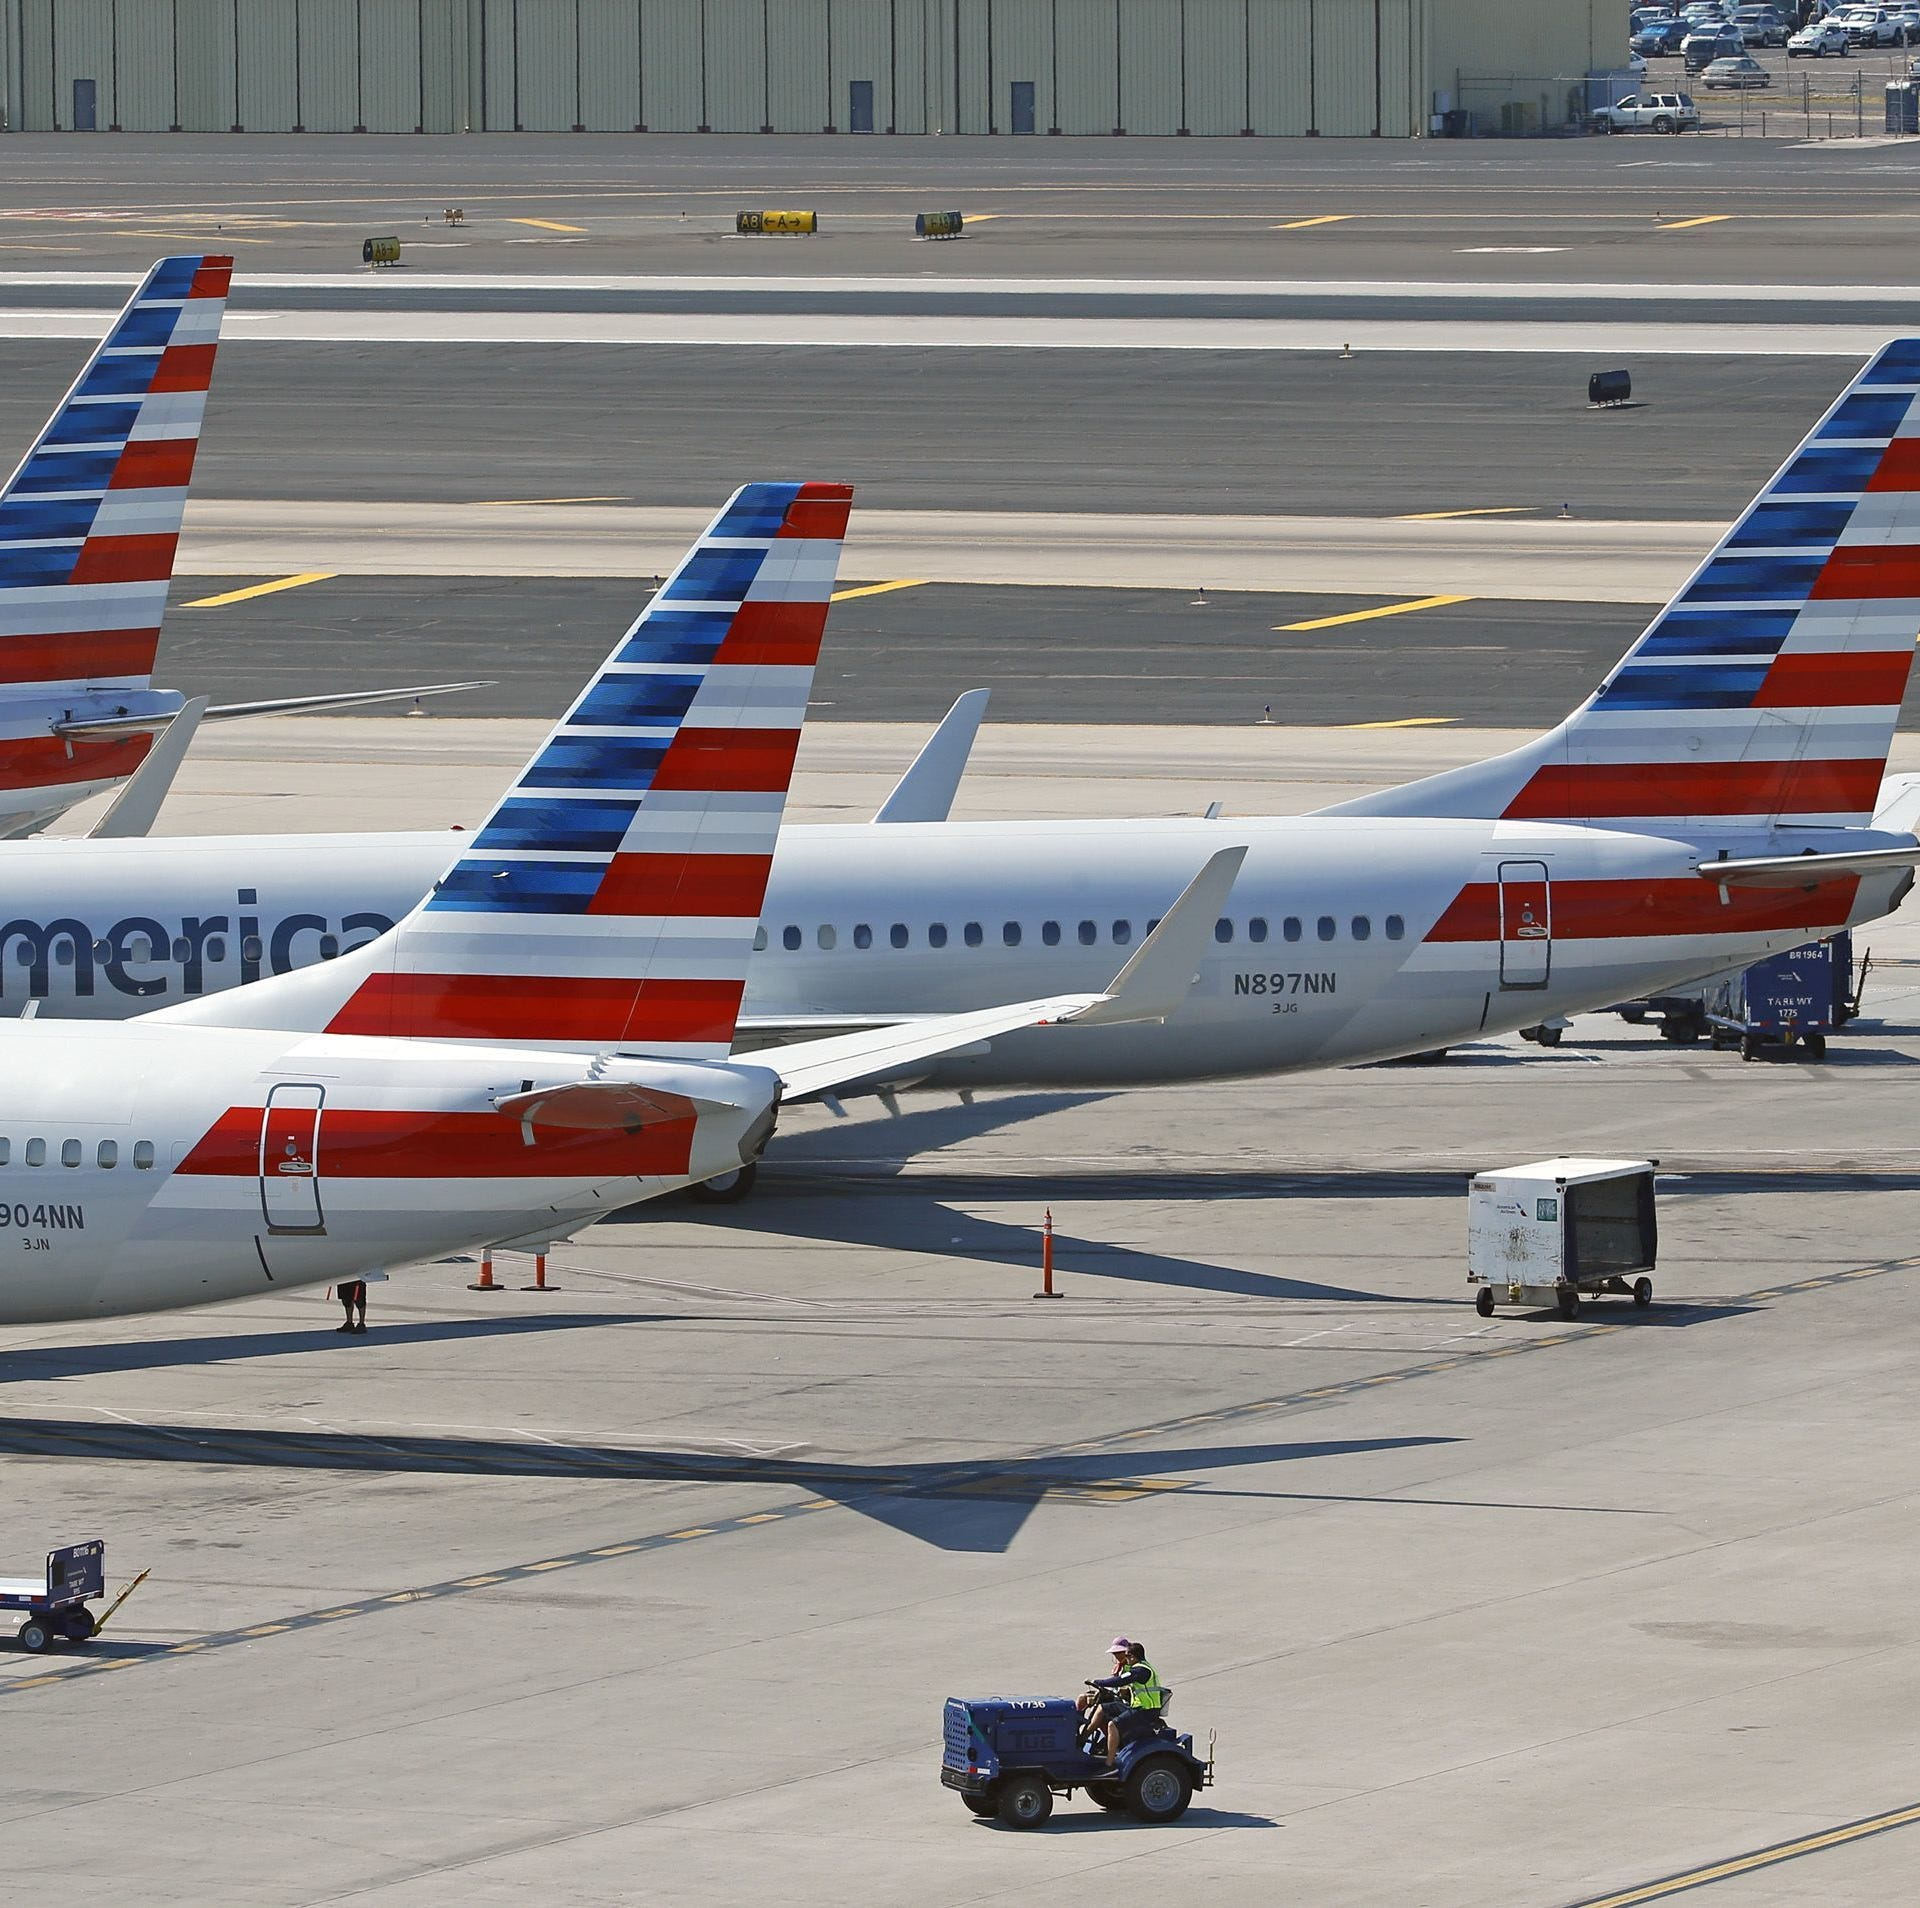 American Airlines has joined Delta and United in offering basic economy fares.  The republic American Airlines has joined Delta and United in offering basic economy fares.